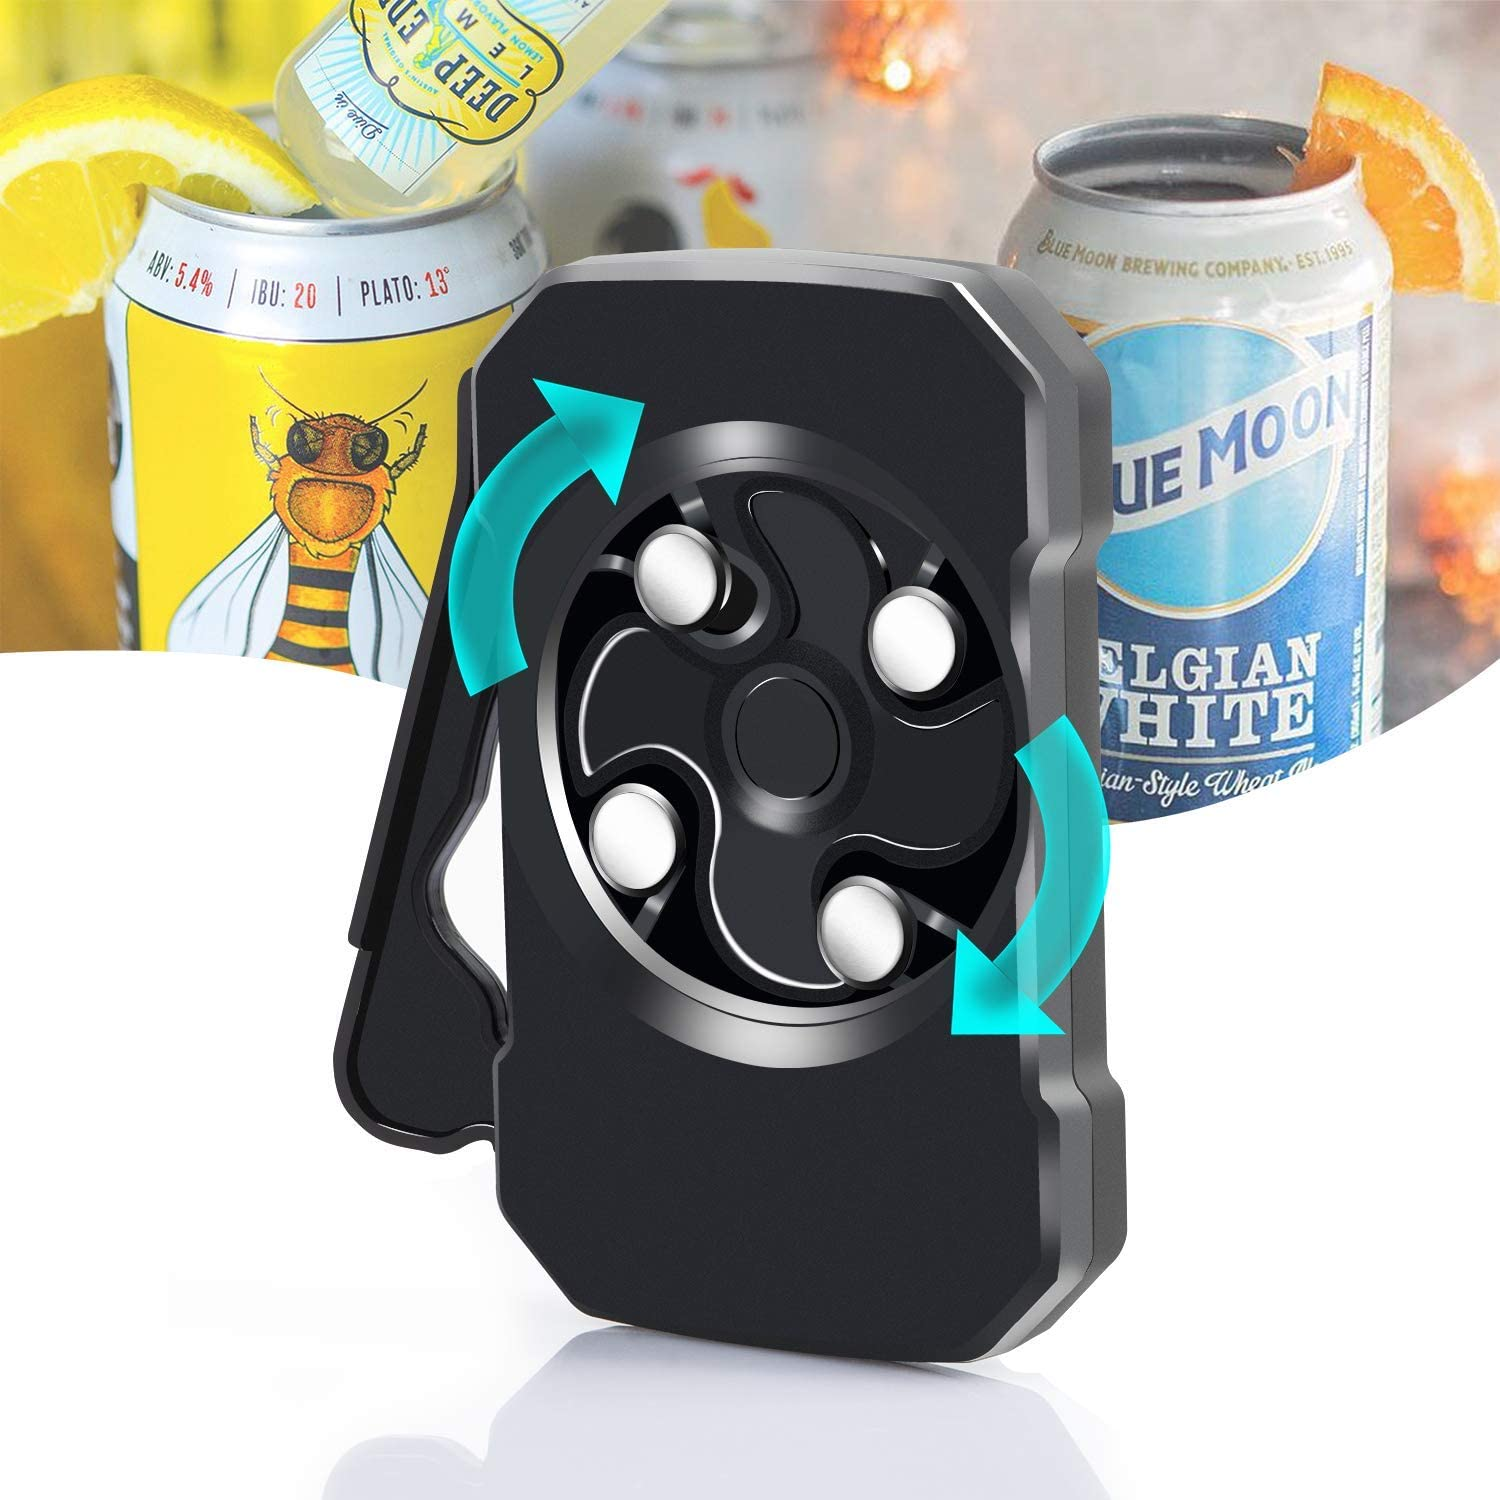 Blasoul Topless Can Opener,Multifunctional Bottle Opener Safety Easy Manual Can Opener Smooth Edge Beer Opener with Locking Feature, Can Opener Hand Held for 8-19 oz Beverage Cans,Household Bar Tool